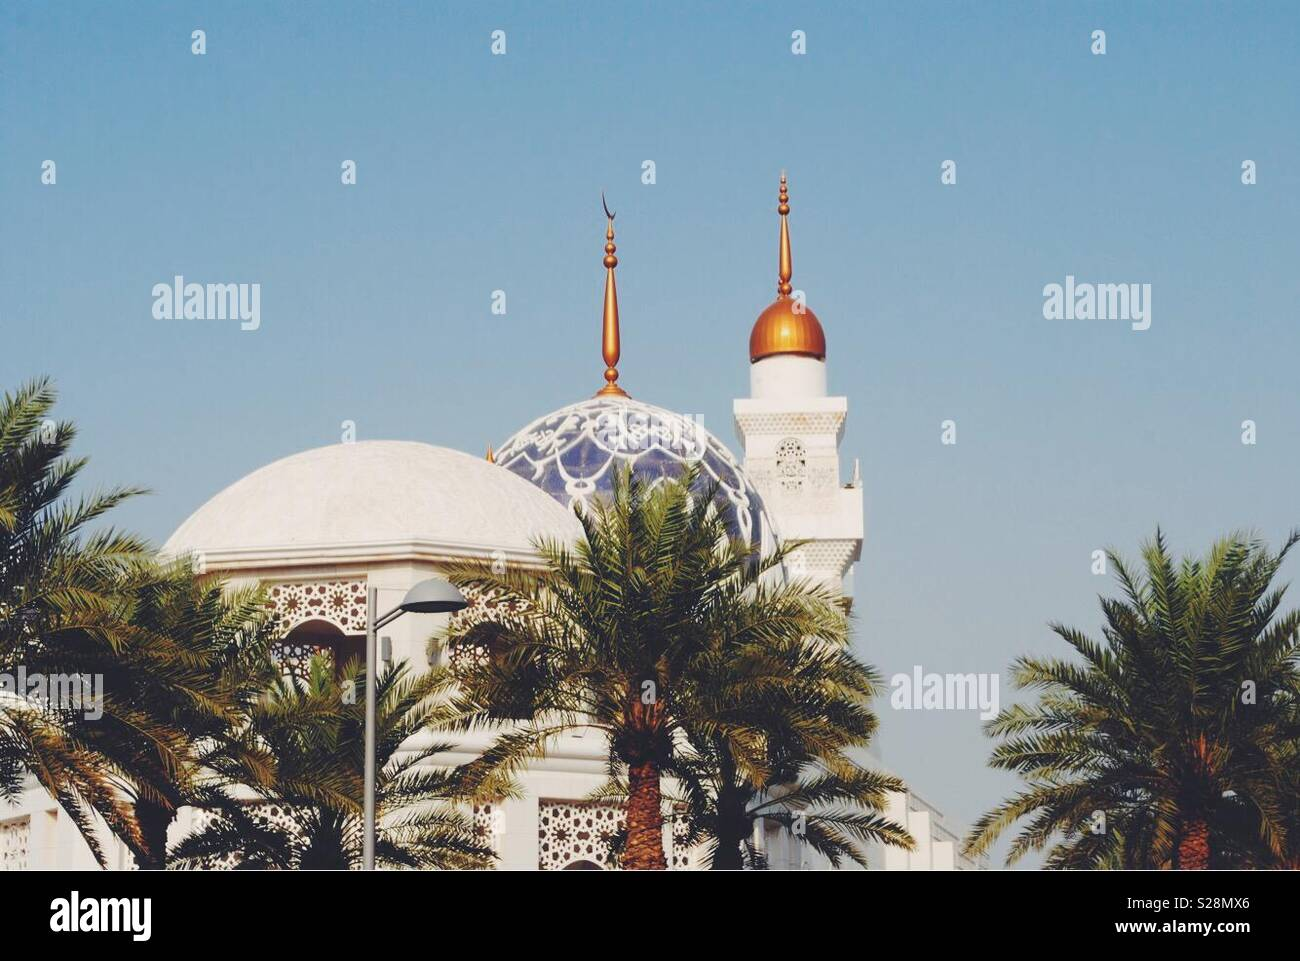 saudi in december - Stock Image